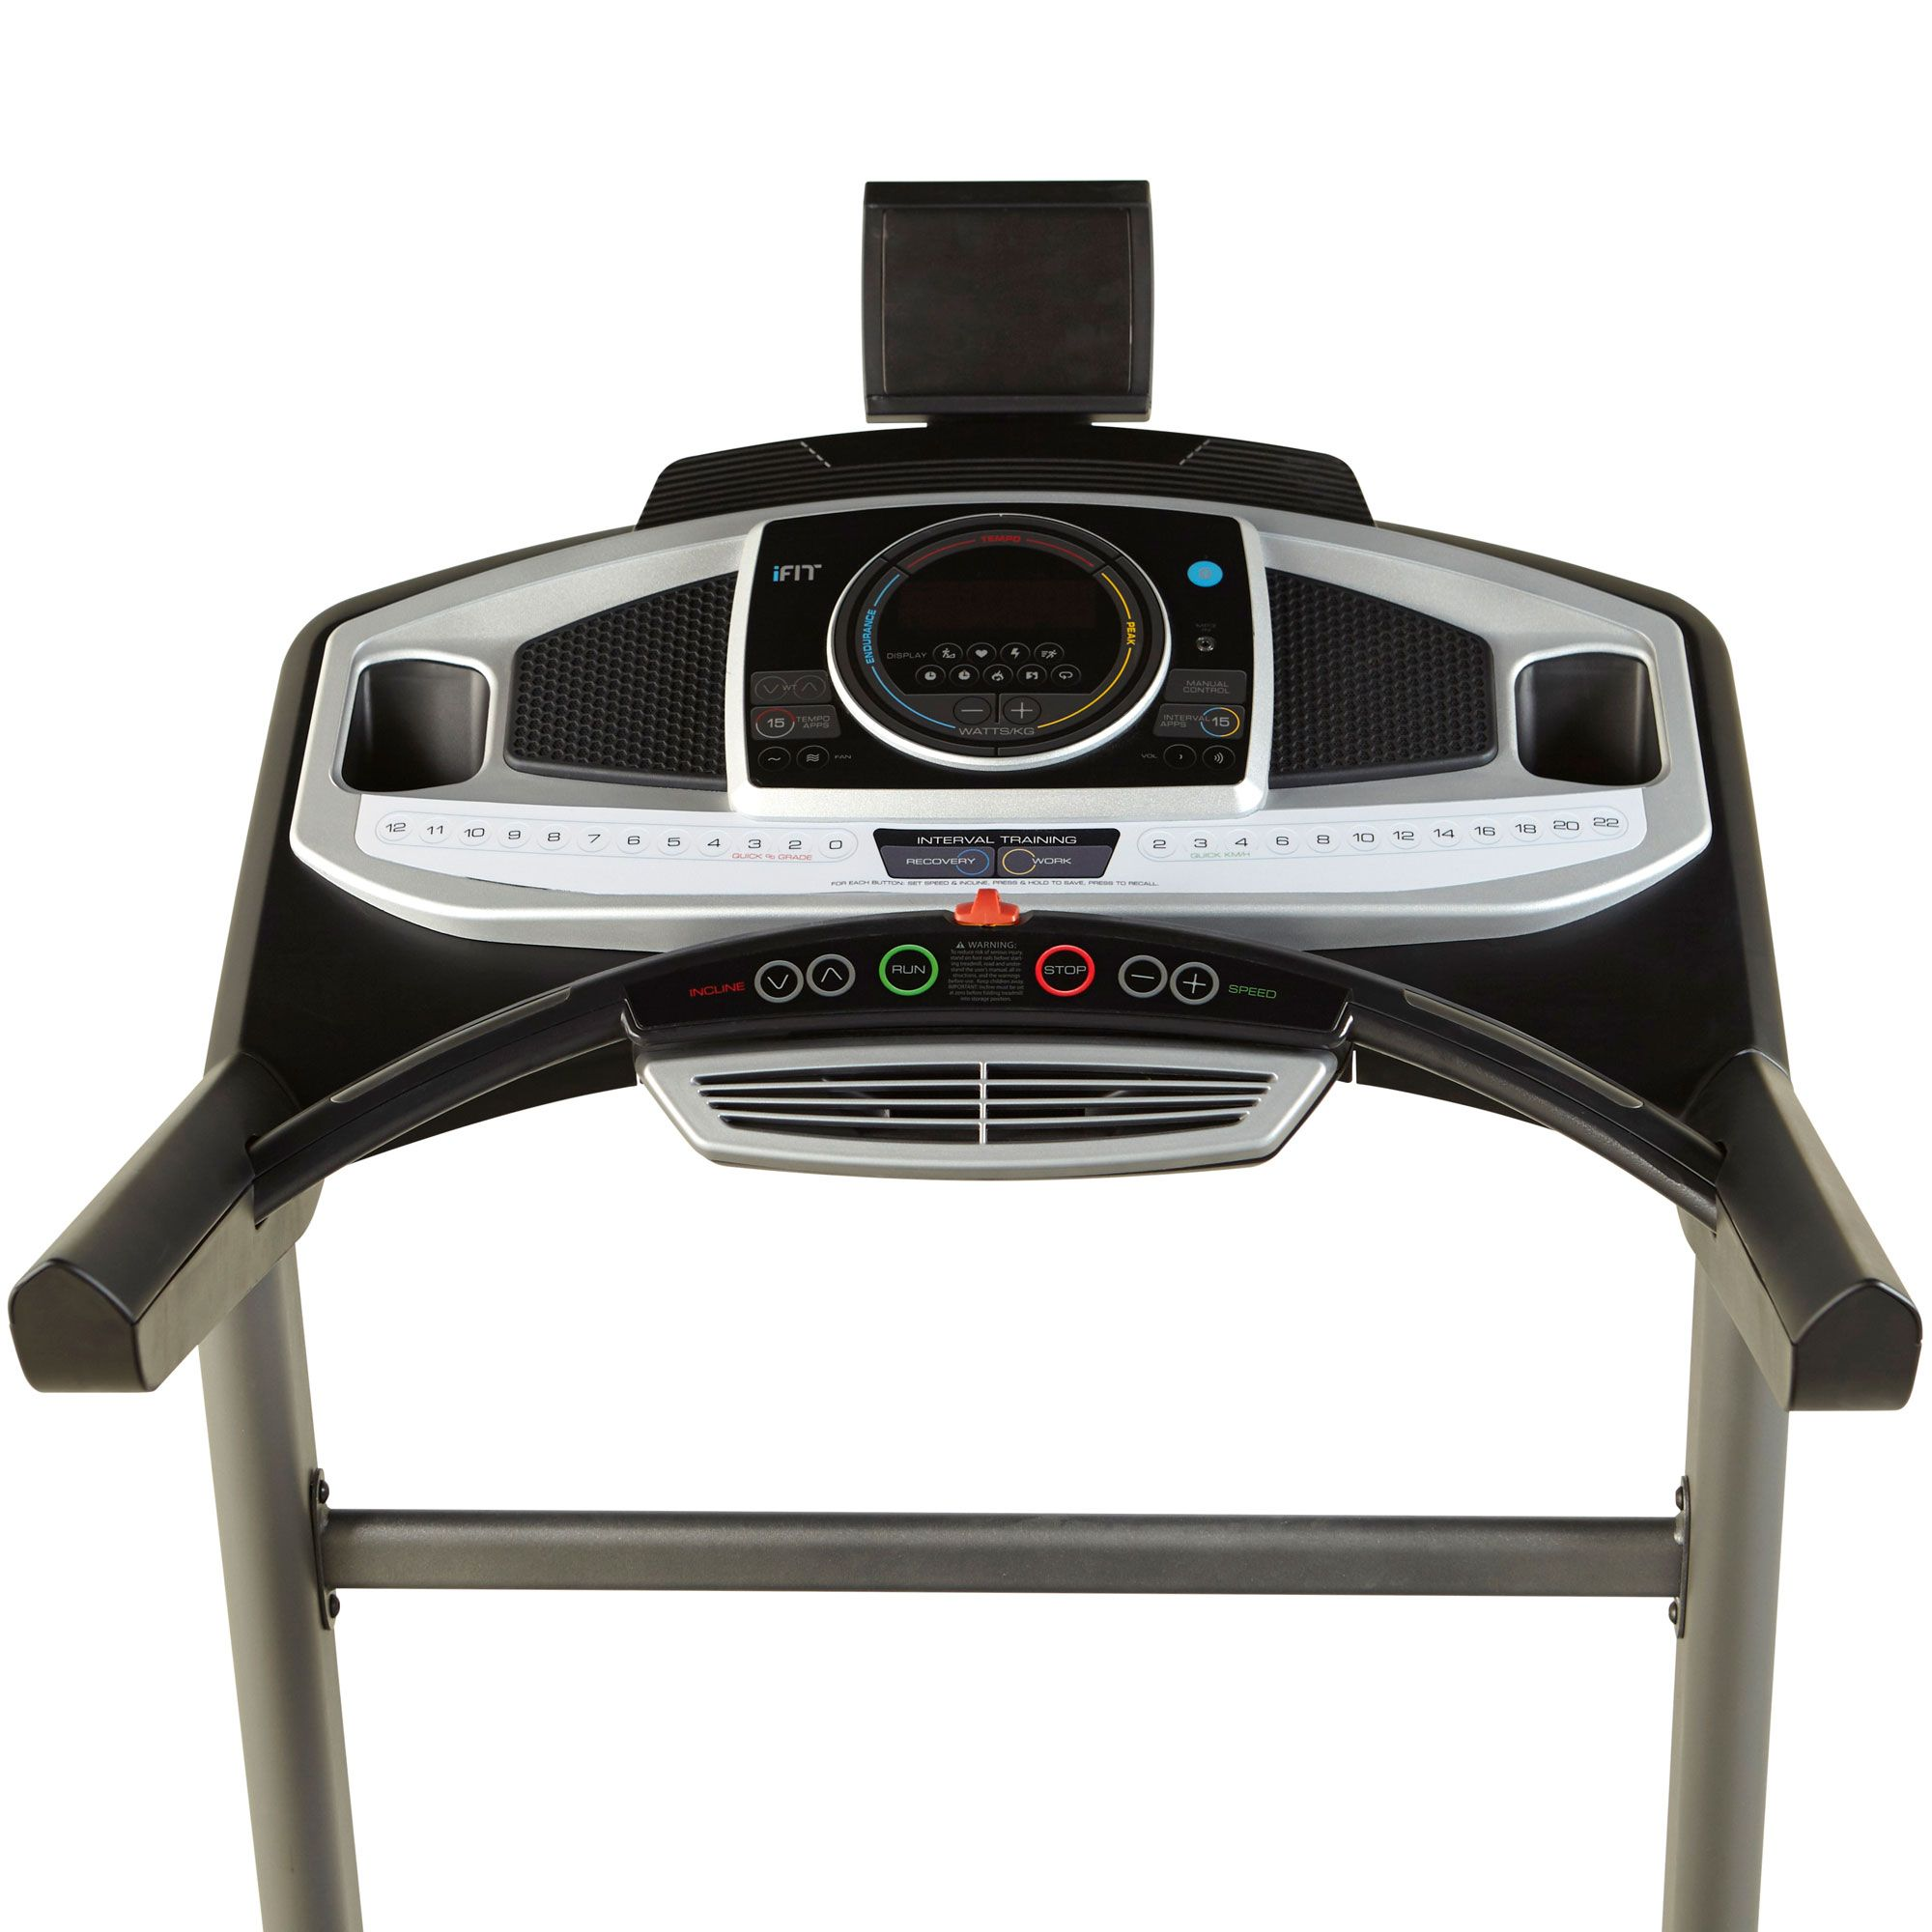 ProForm Power 995i Treadmill - Sweatband.com